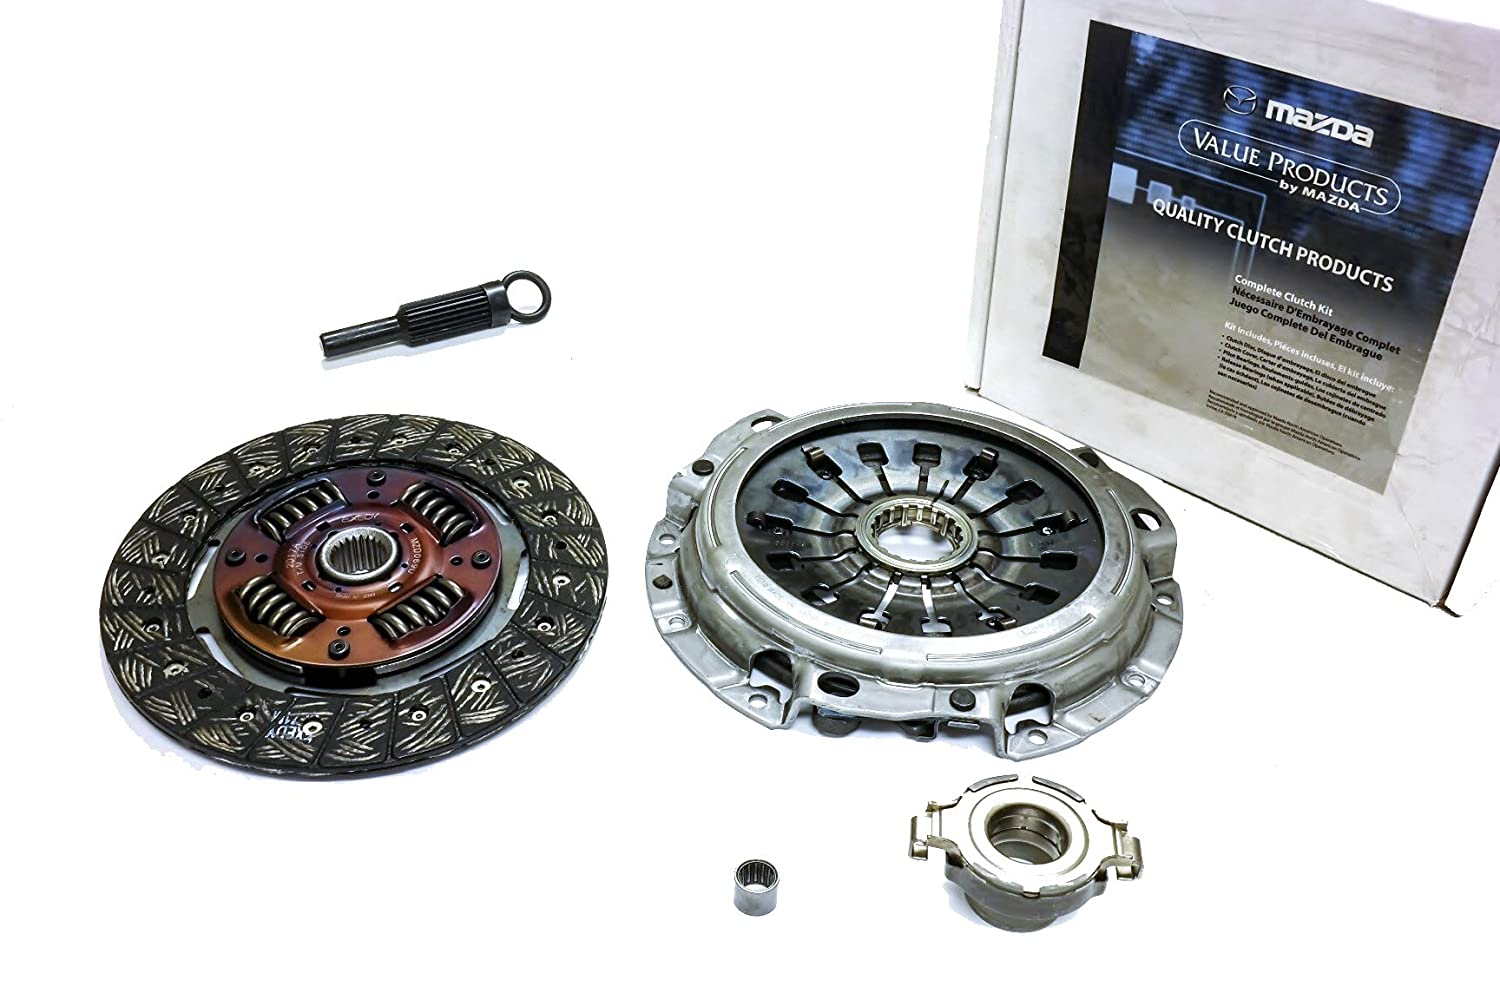 Amazon.com: 1993-1995 Mazda RX-7 Clutch Rebuild Kit OEM N315-16-490MV: Automotive